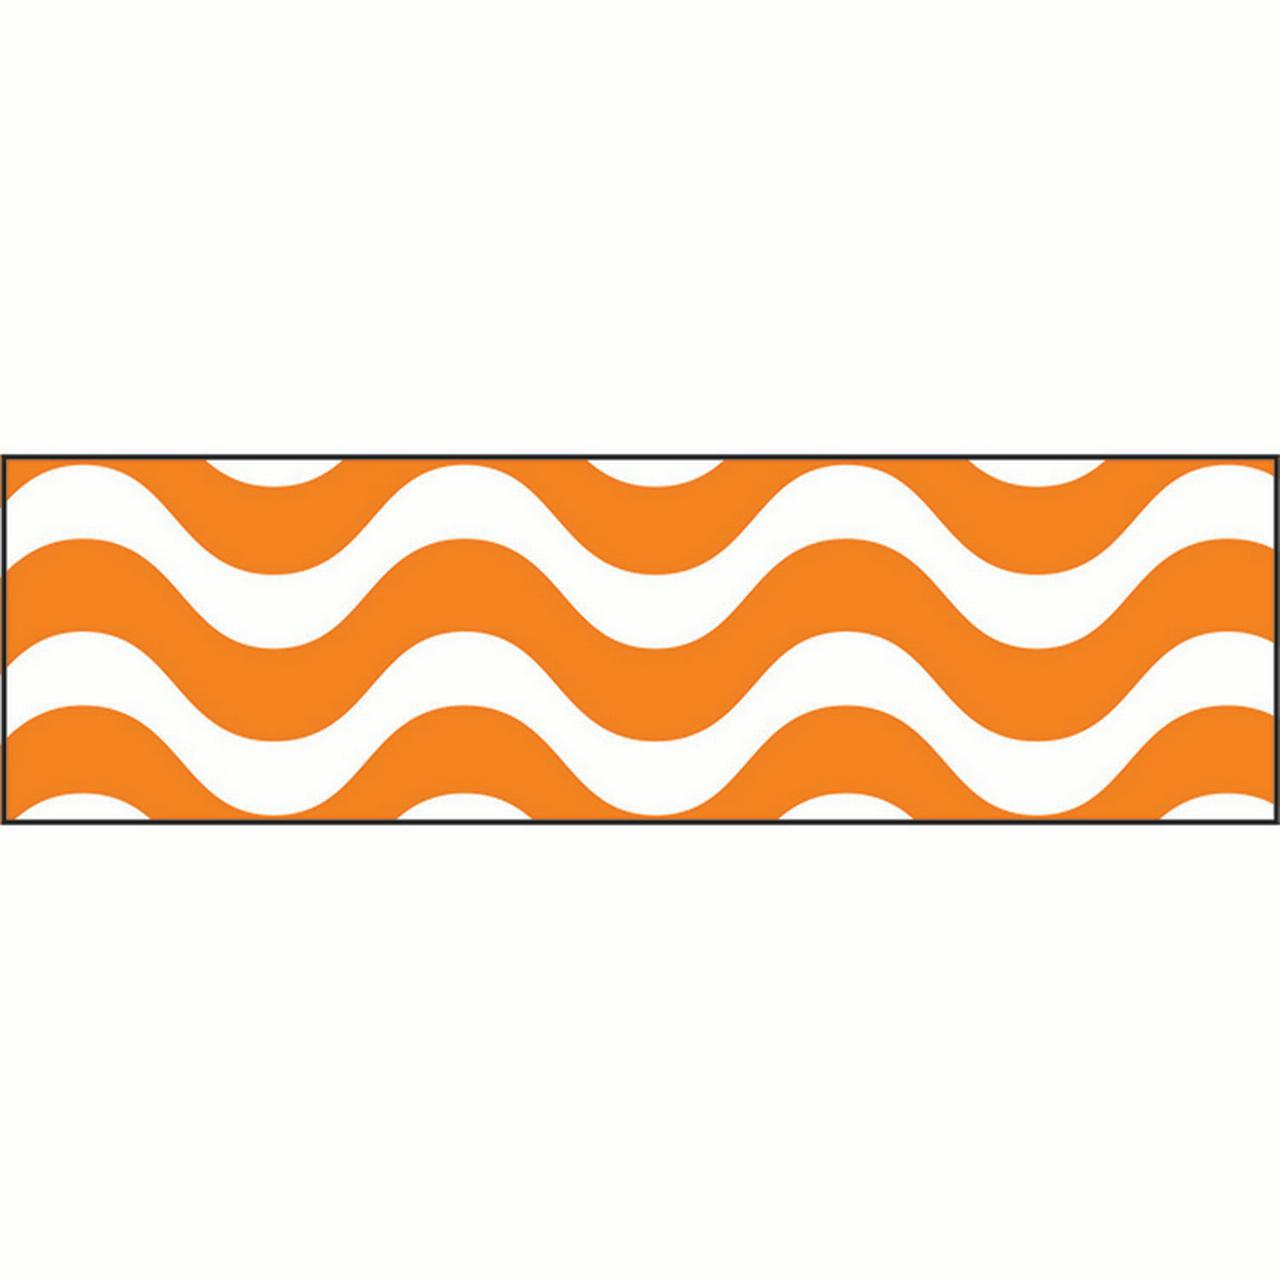 WAVY ORANGE BOLDER BORDERS